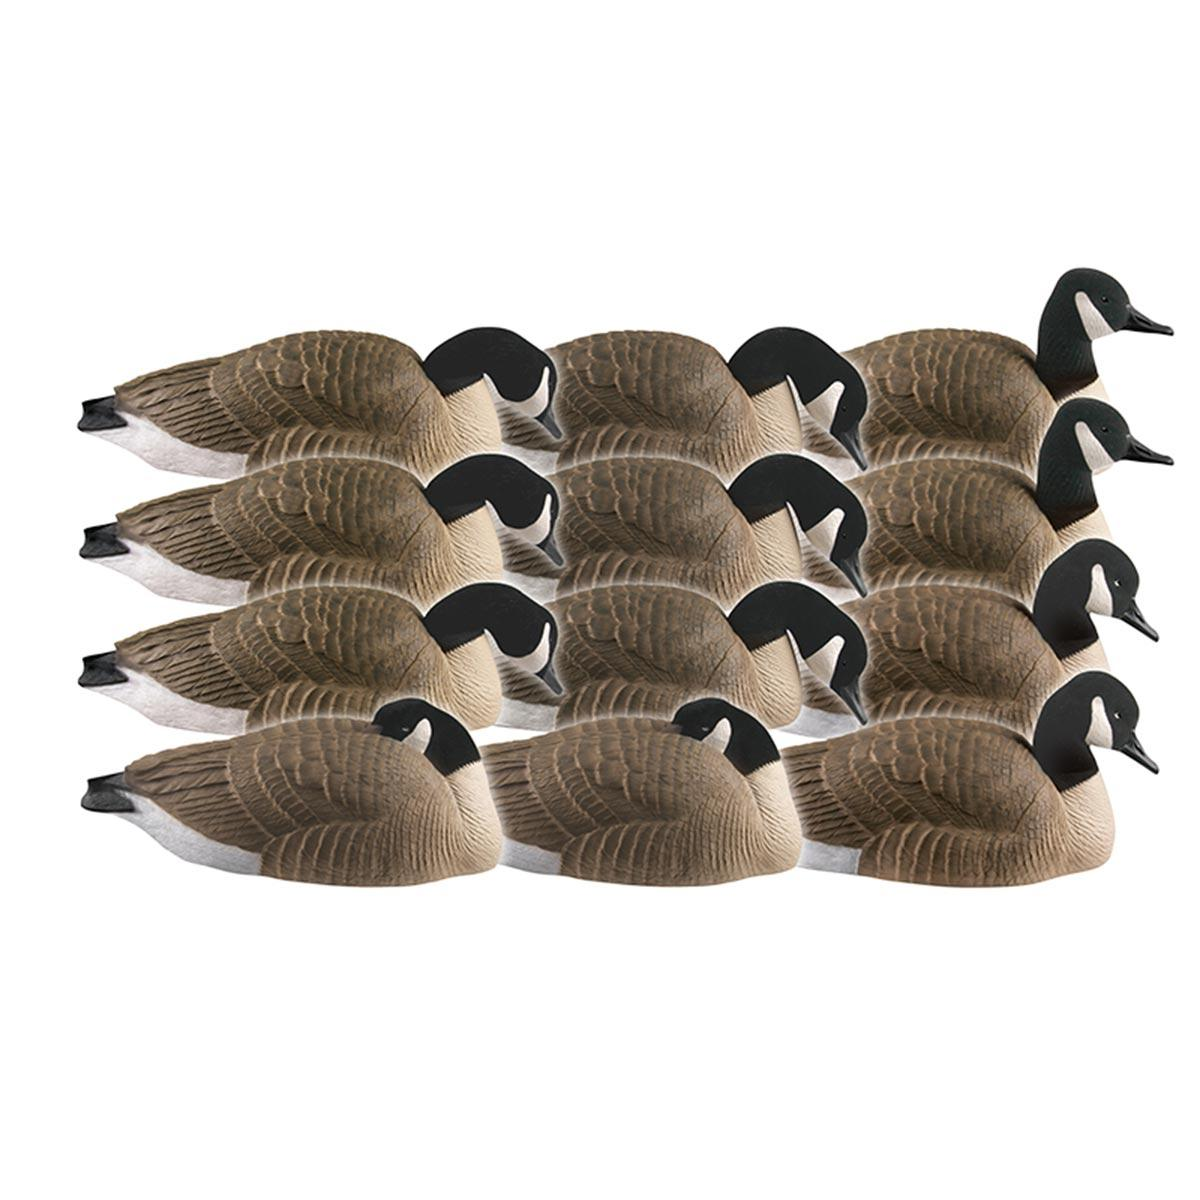 Greenhead Gear Pro-Grade Series Life-Size Canada Goose Shells Harvester Pack